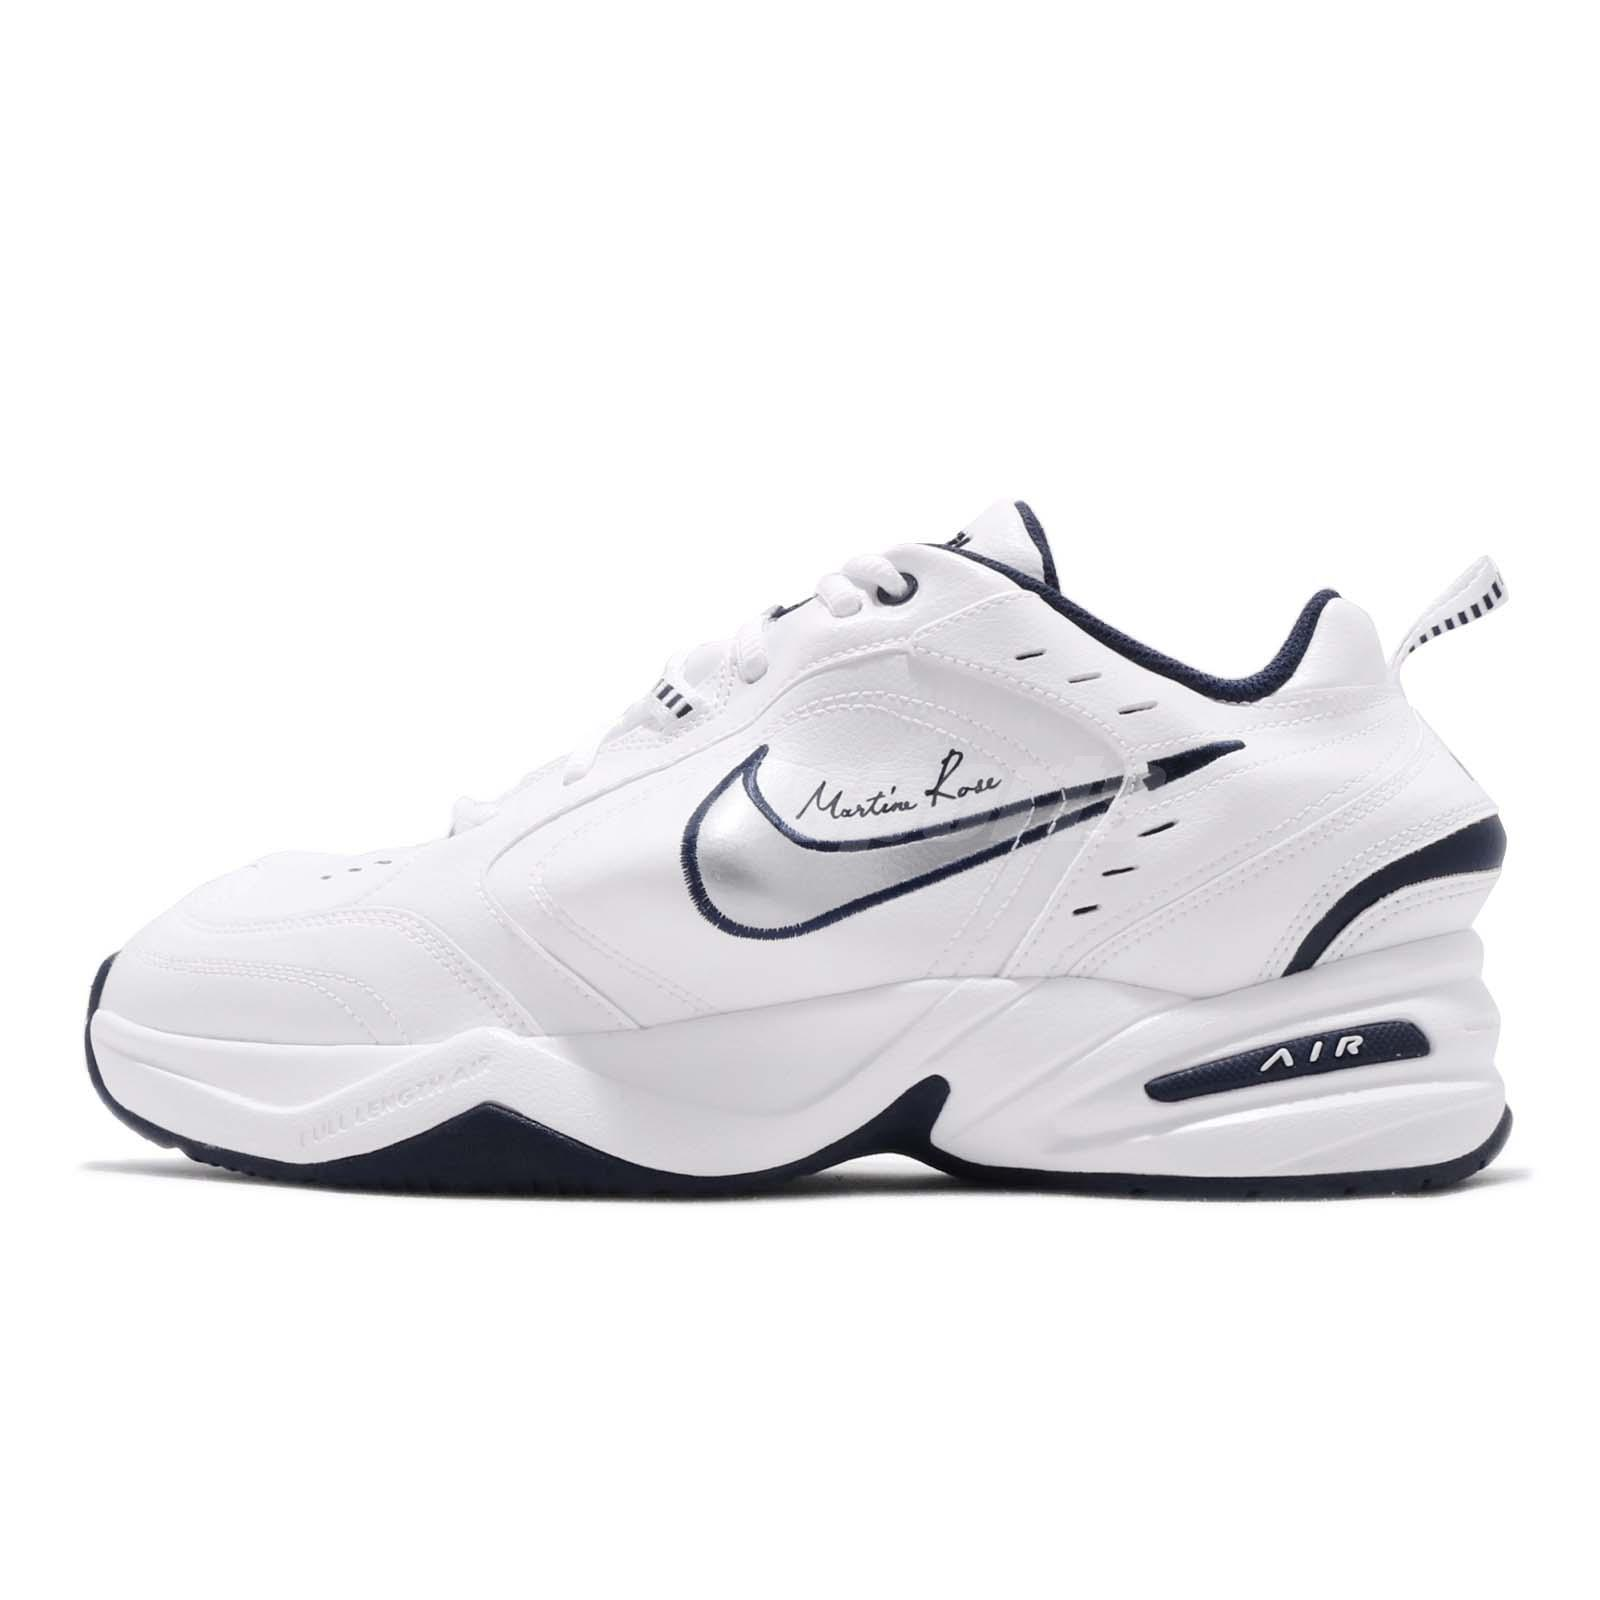 3cc39c07720074 Nike Air Monarch IV Martine Rose White Silver Navy Mens Shoes Sneaker AT3147 -100